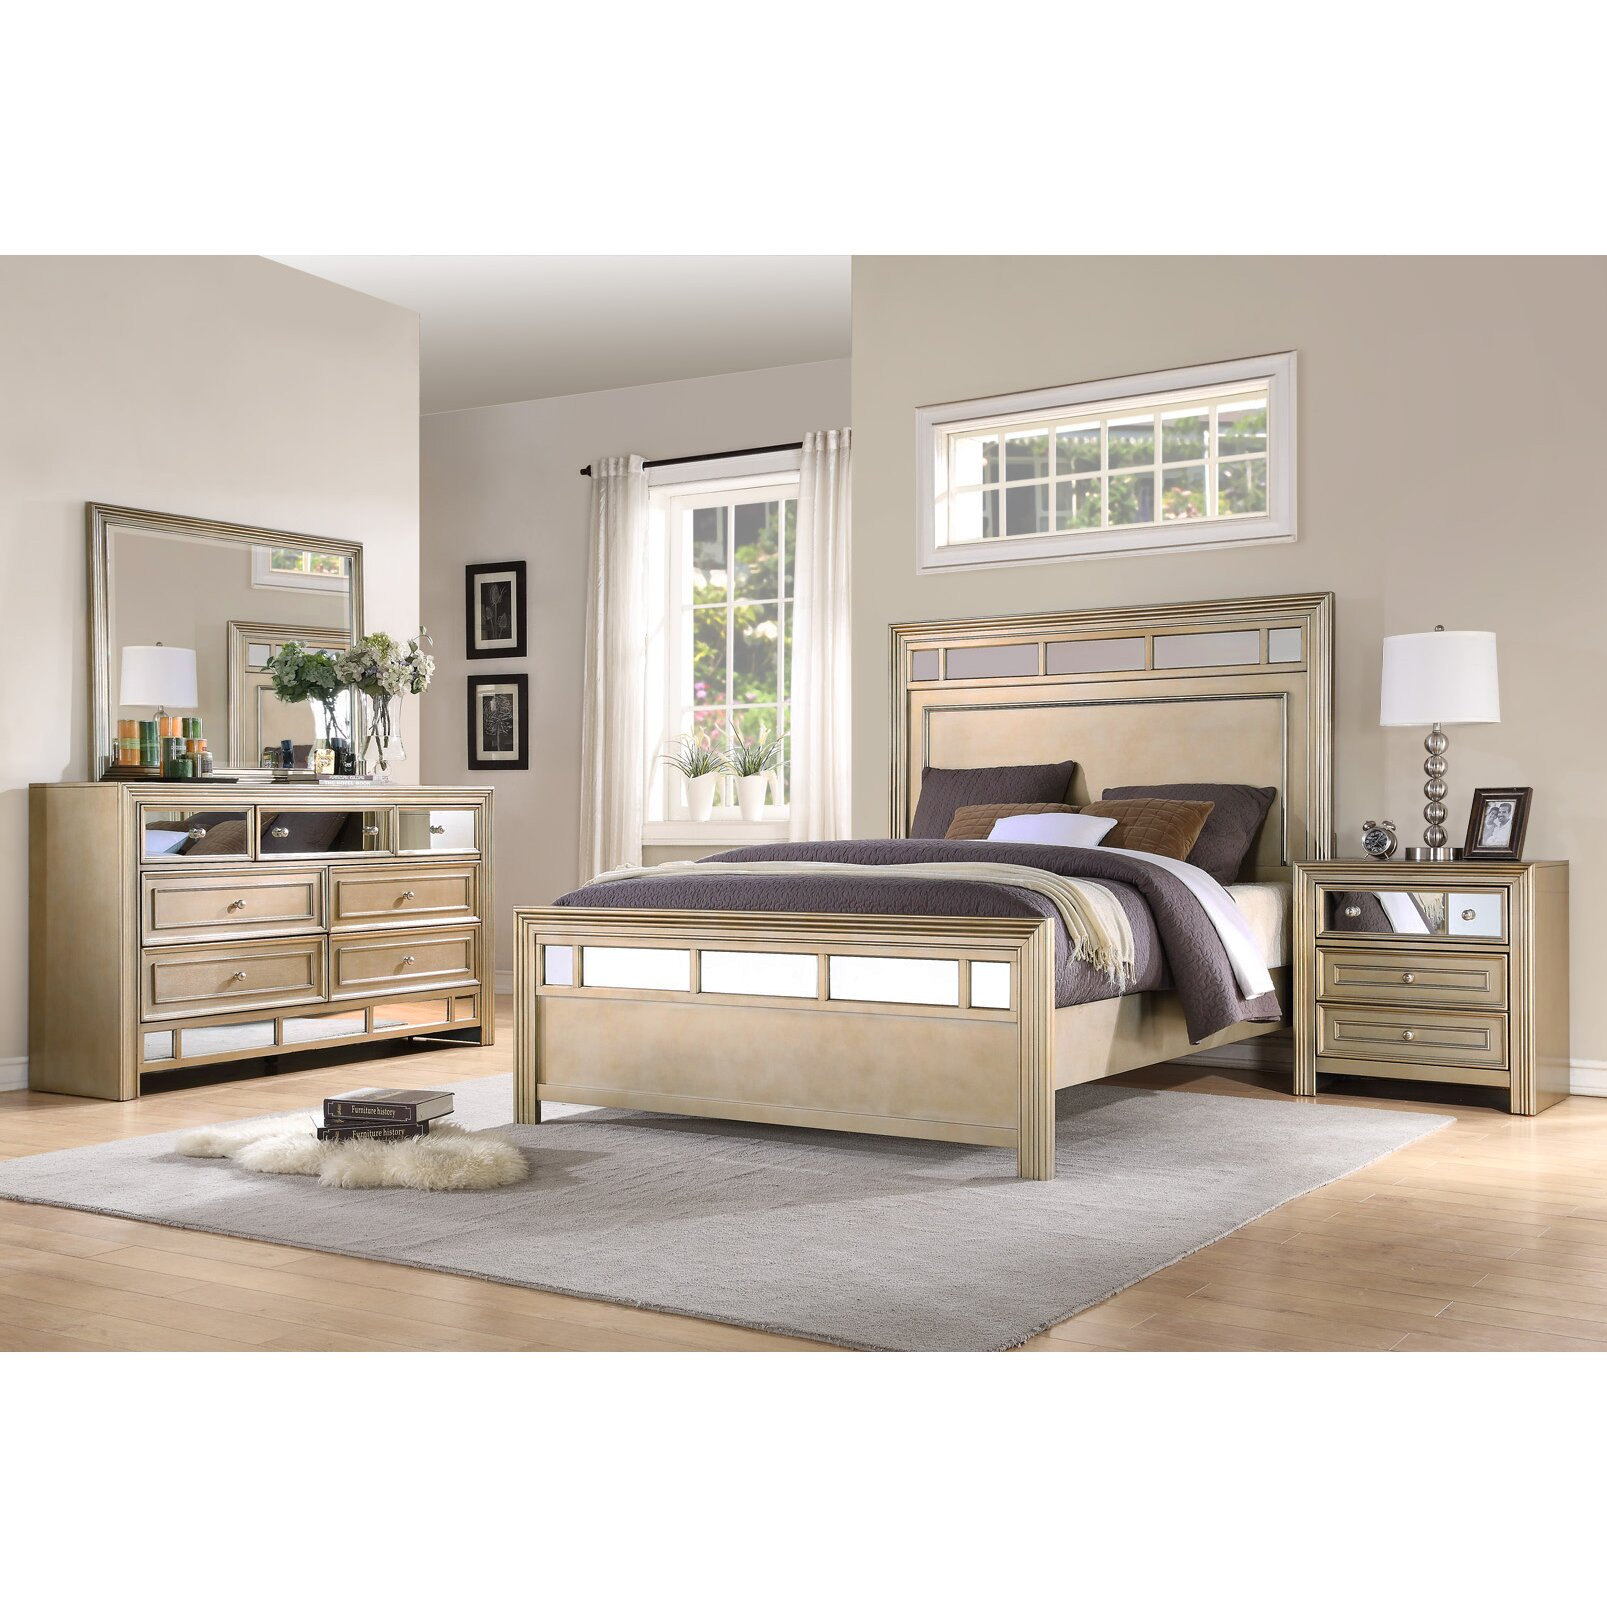 Fairfax Home Collections Champagne Panel Customizable Bedroom Set Reviews Wayfair